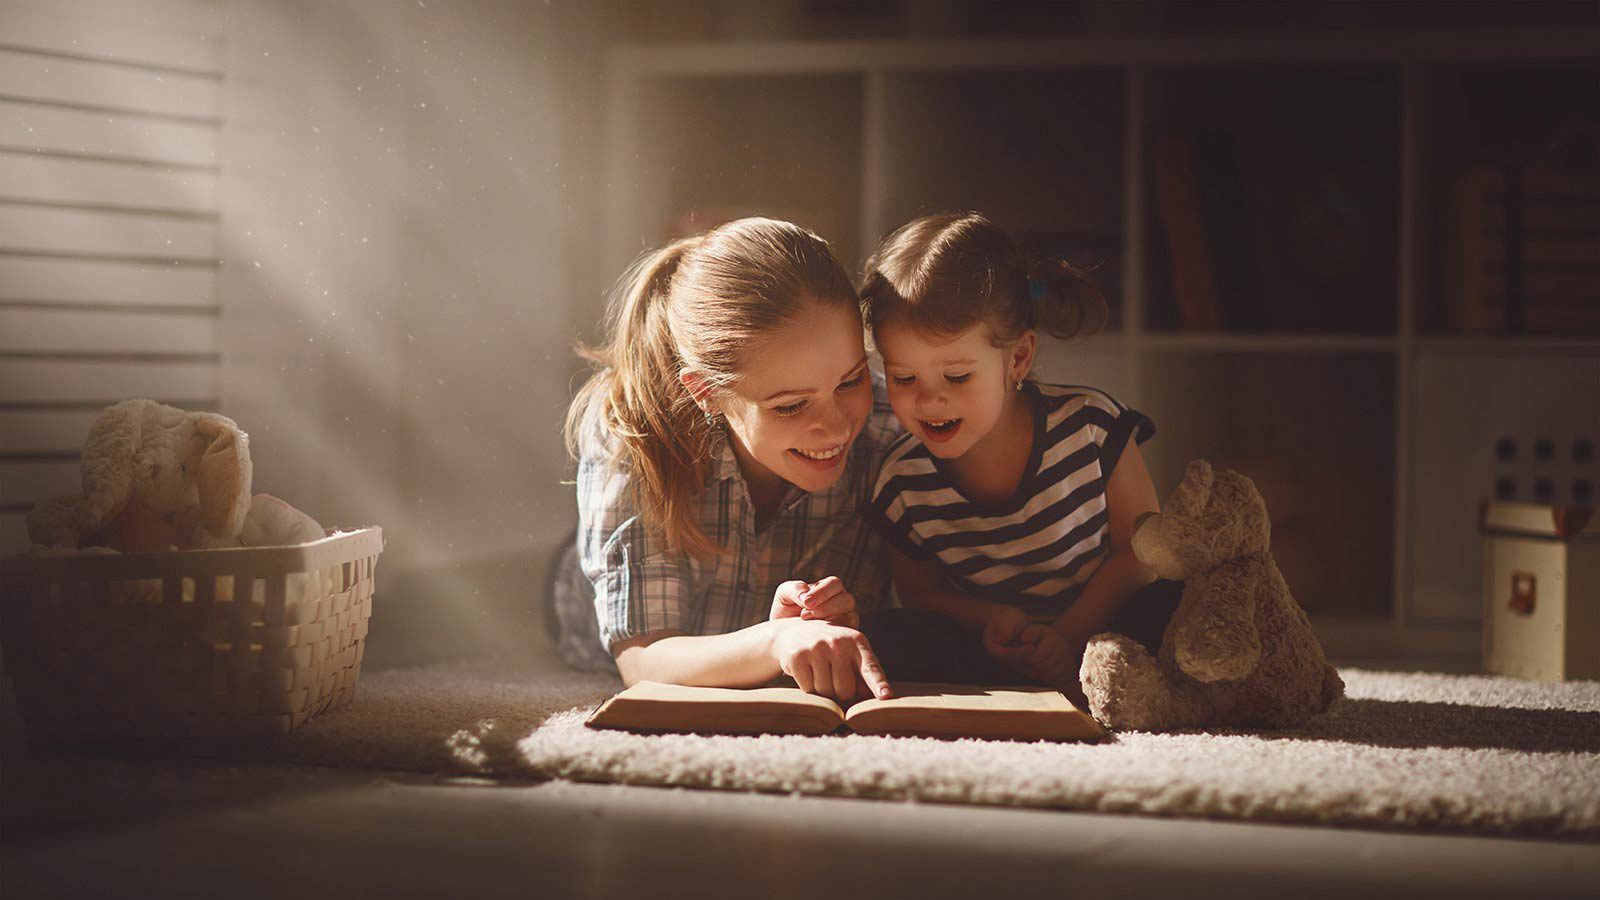 Woman and young girl lying on carpet with teddy bear reading book.